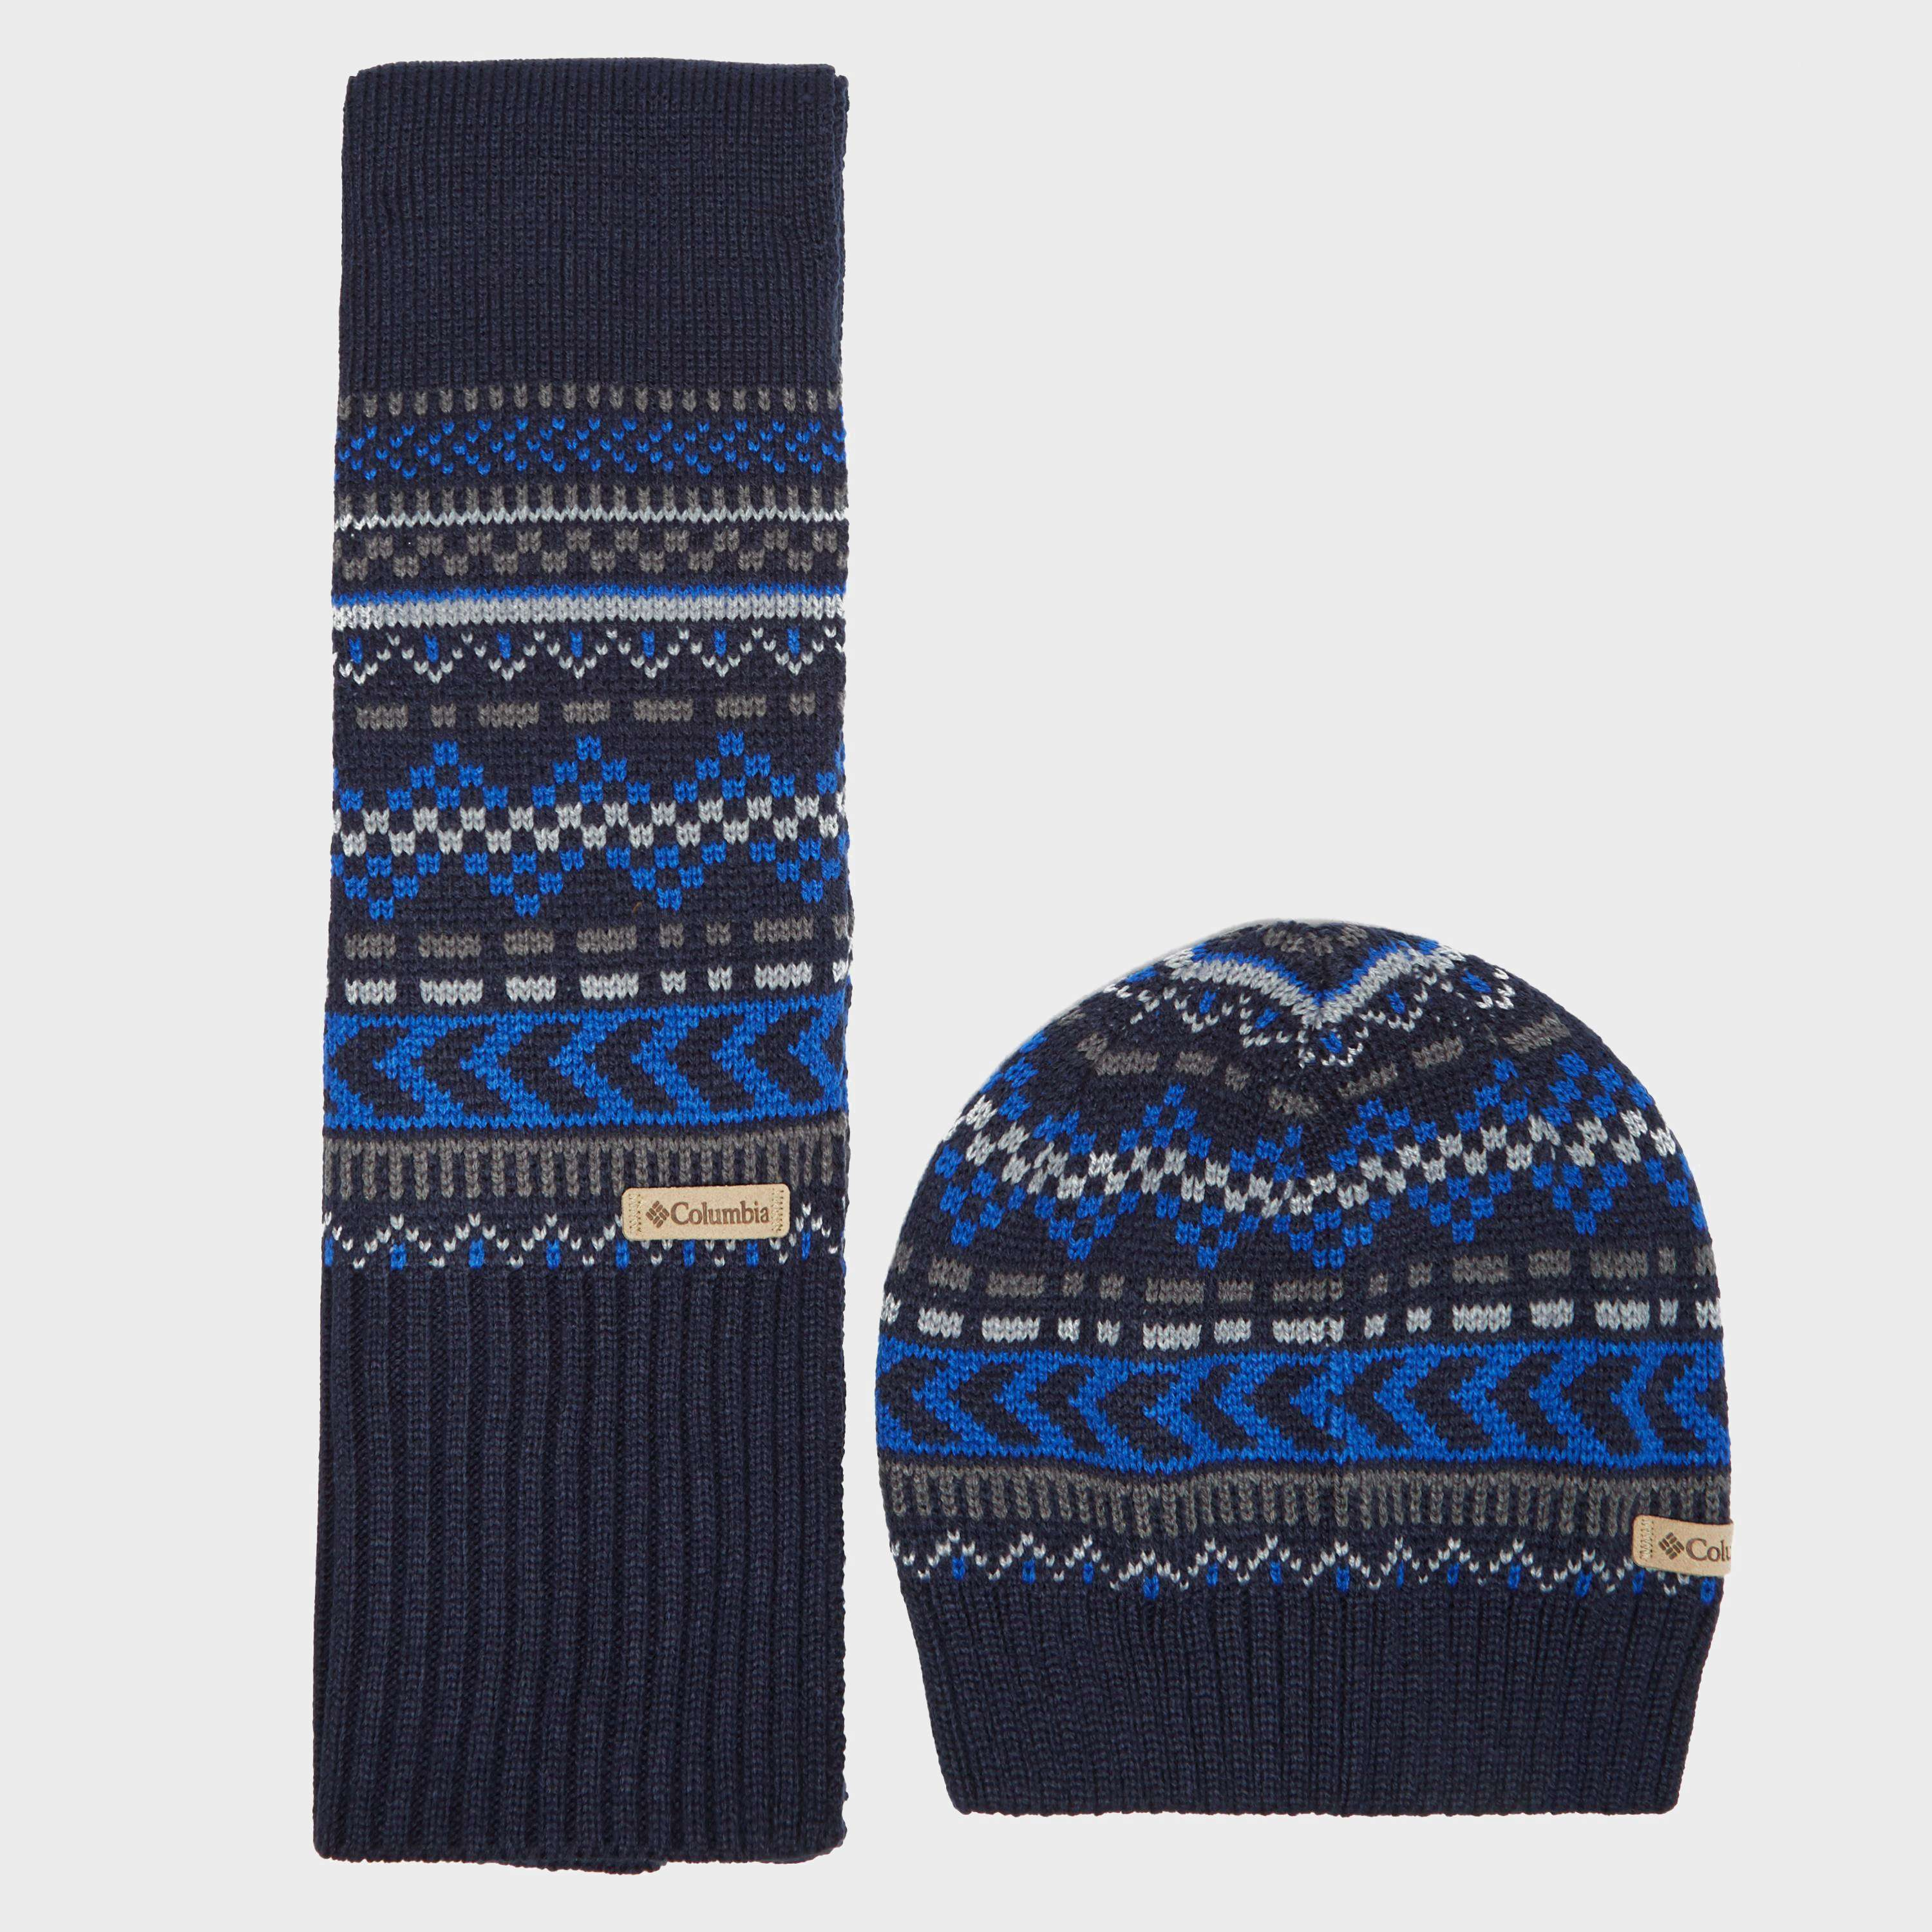 COLUMBIA Men's Winter Worn Hat & Scarf Set